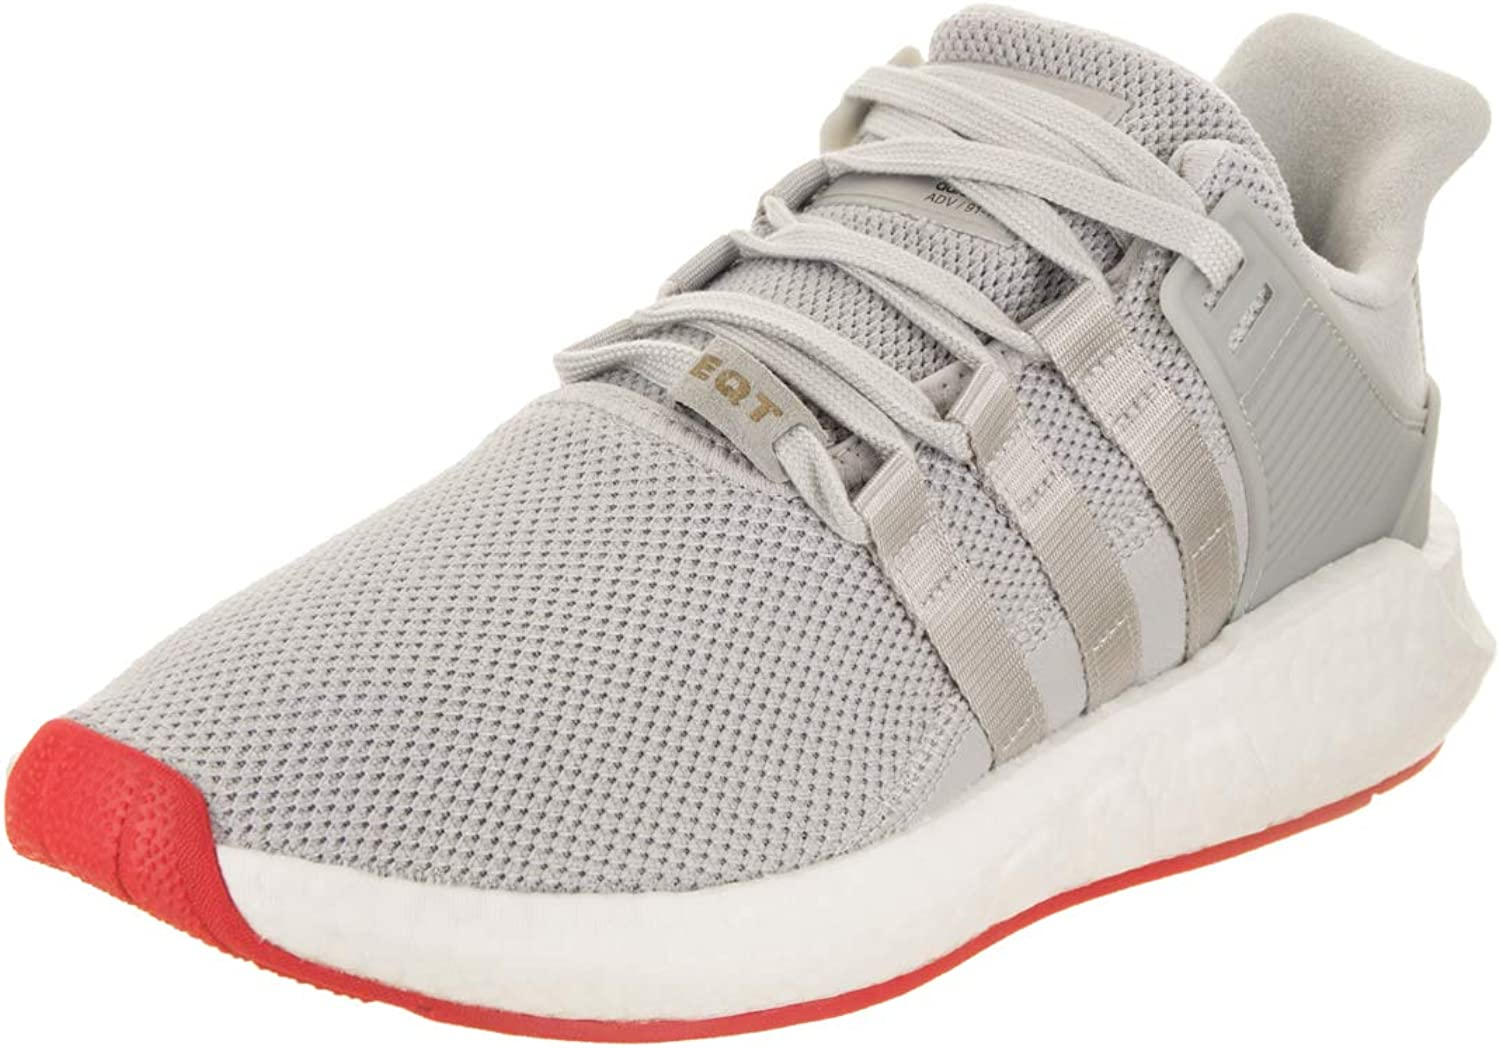 Adidas Men's EQT Support 93 17 Originals Running shoes